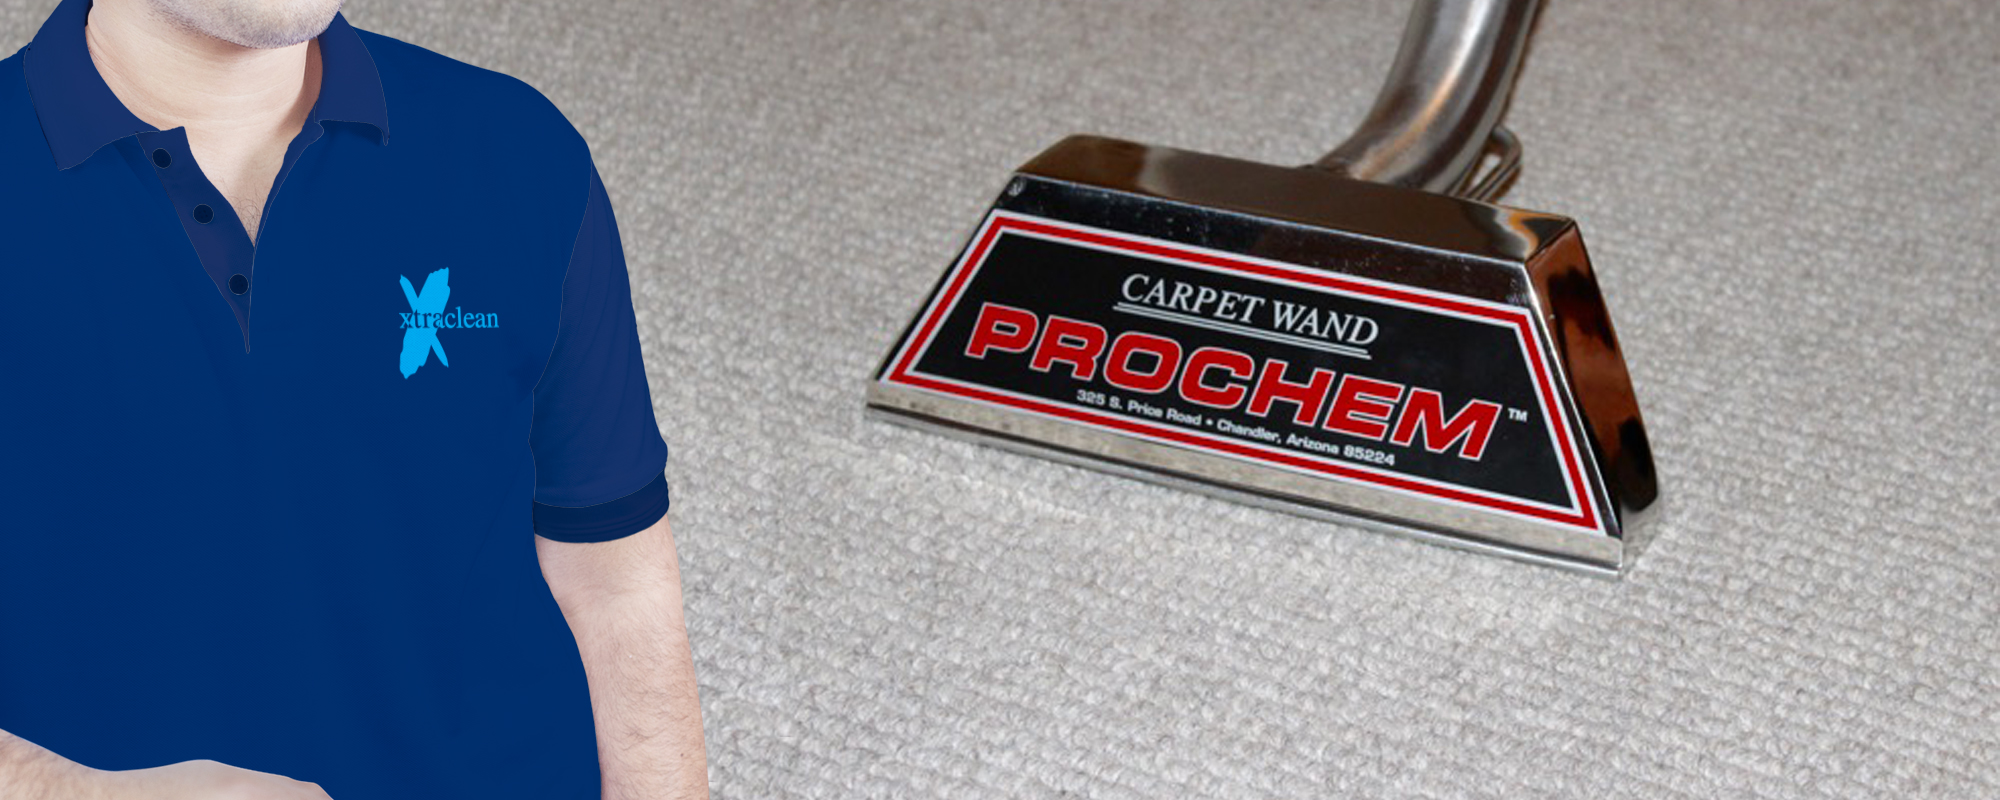 Why use a professional carpet cleaner